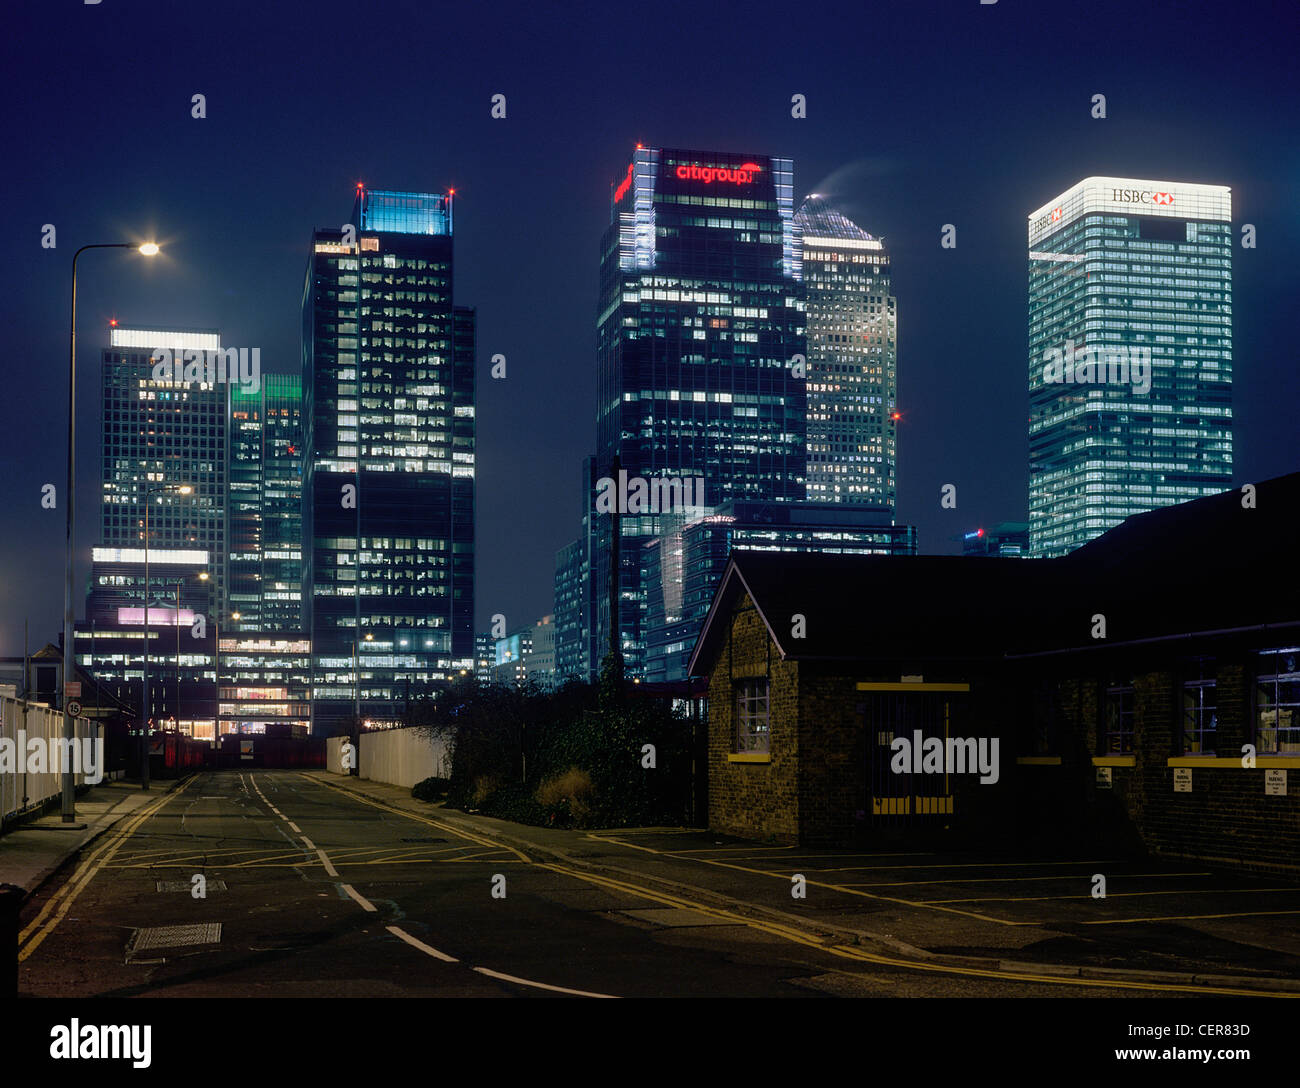 Docklands skyline office blocks at night from Greenwich. - Stock Image